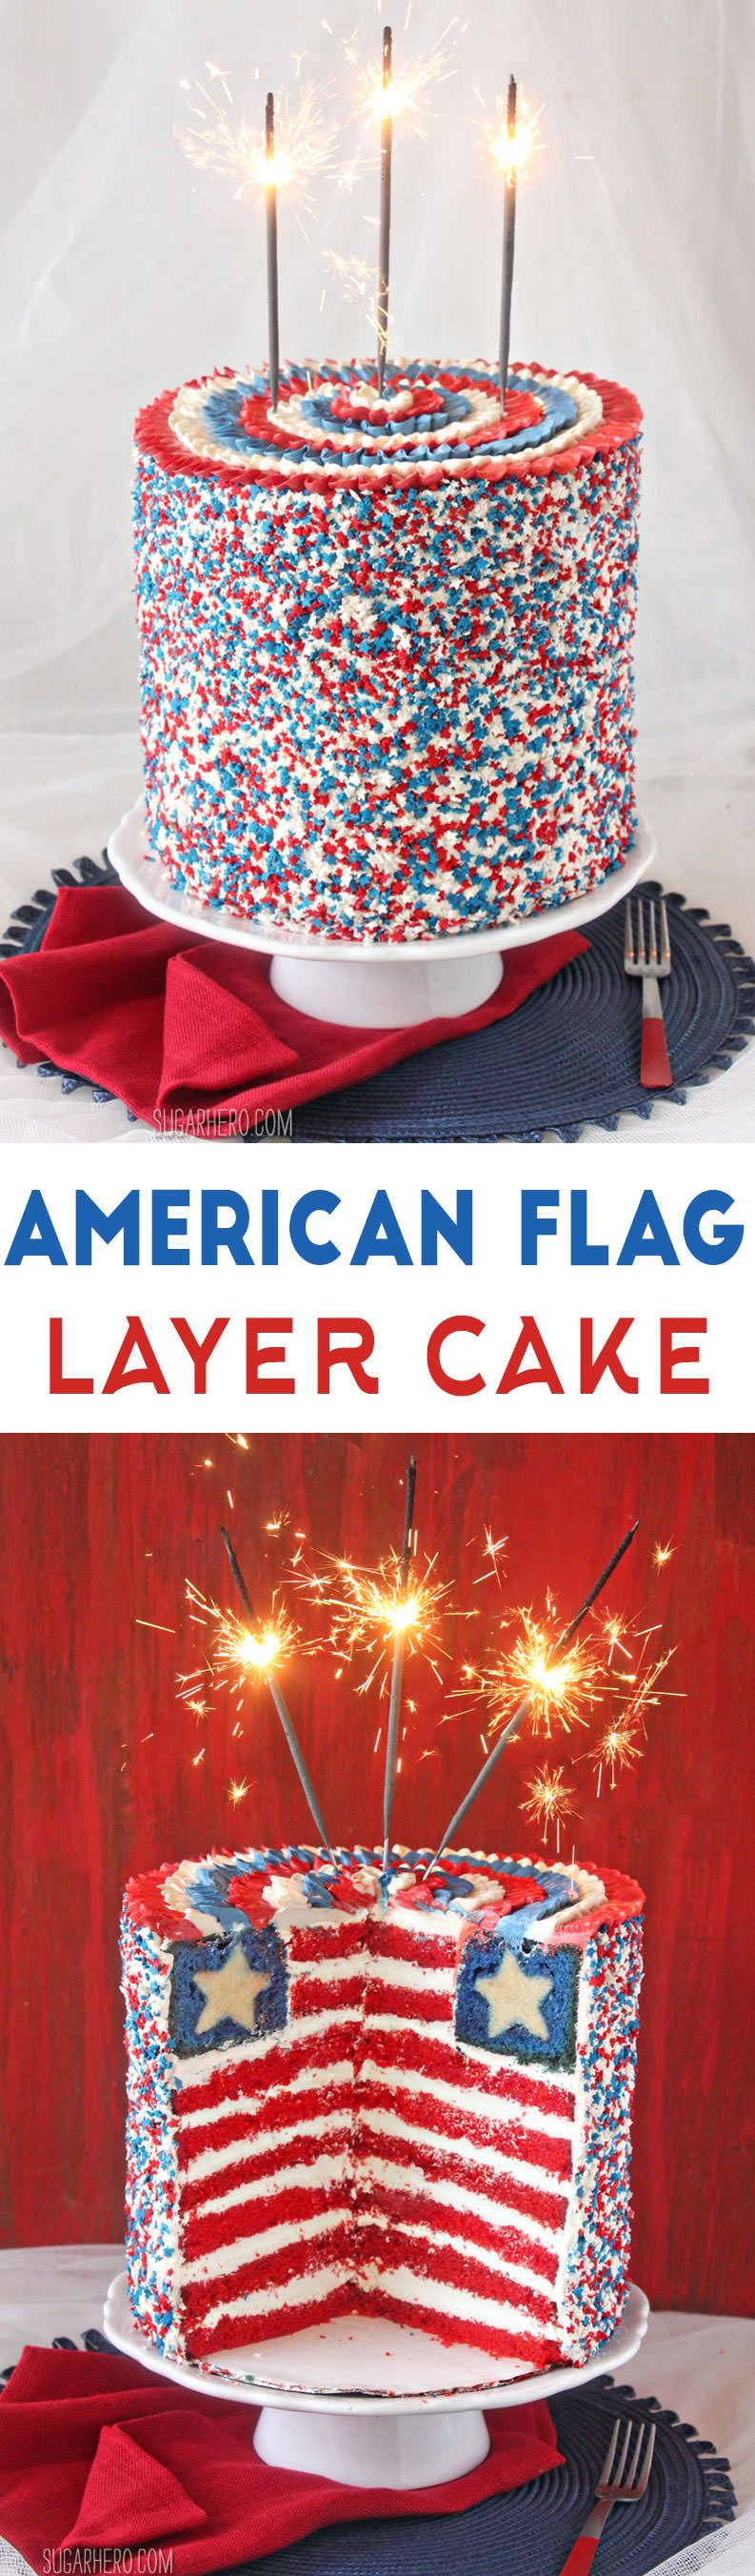 American Flag Layer Cake - a giant sky-high cake with a surprise American flag design inside! | From SugarHero.com